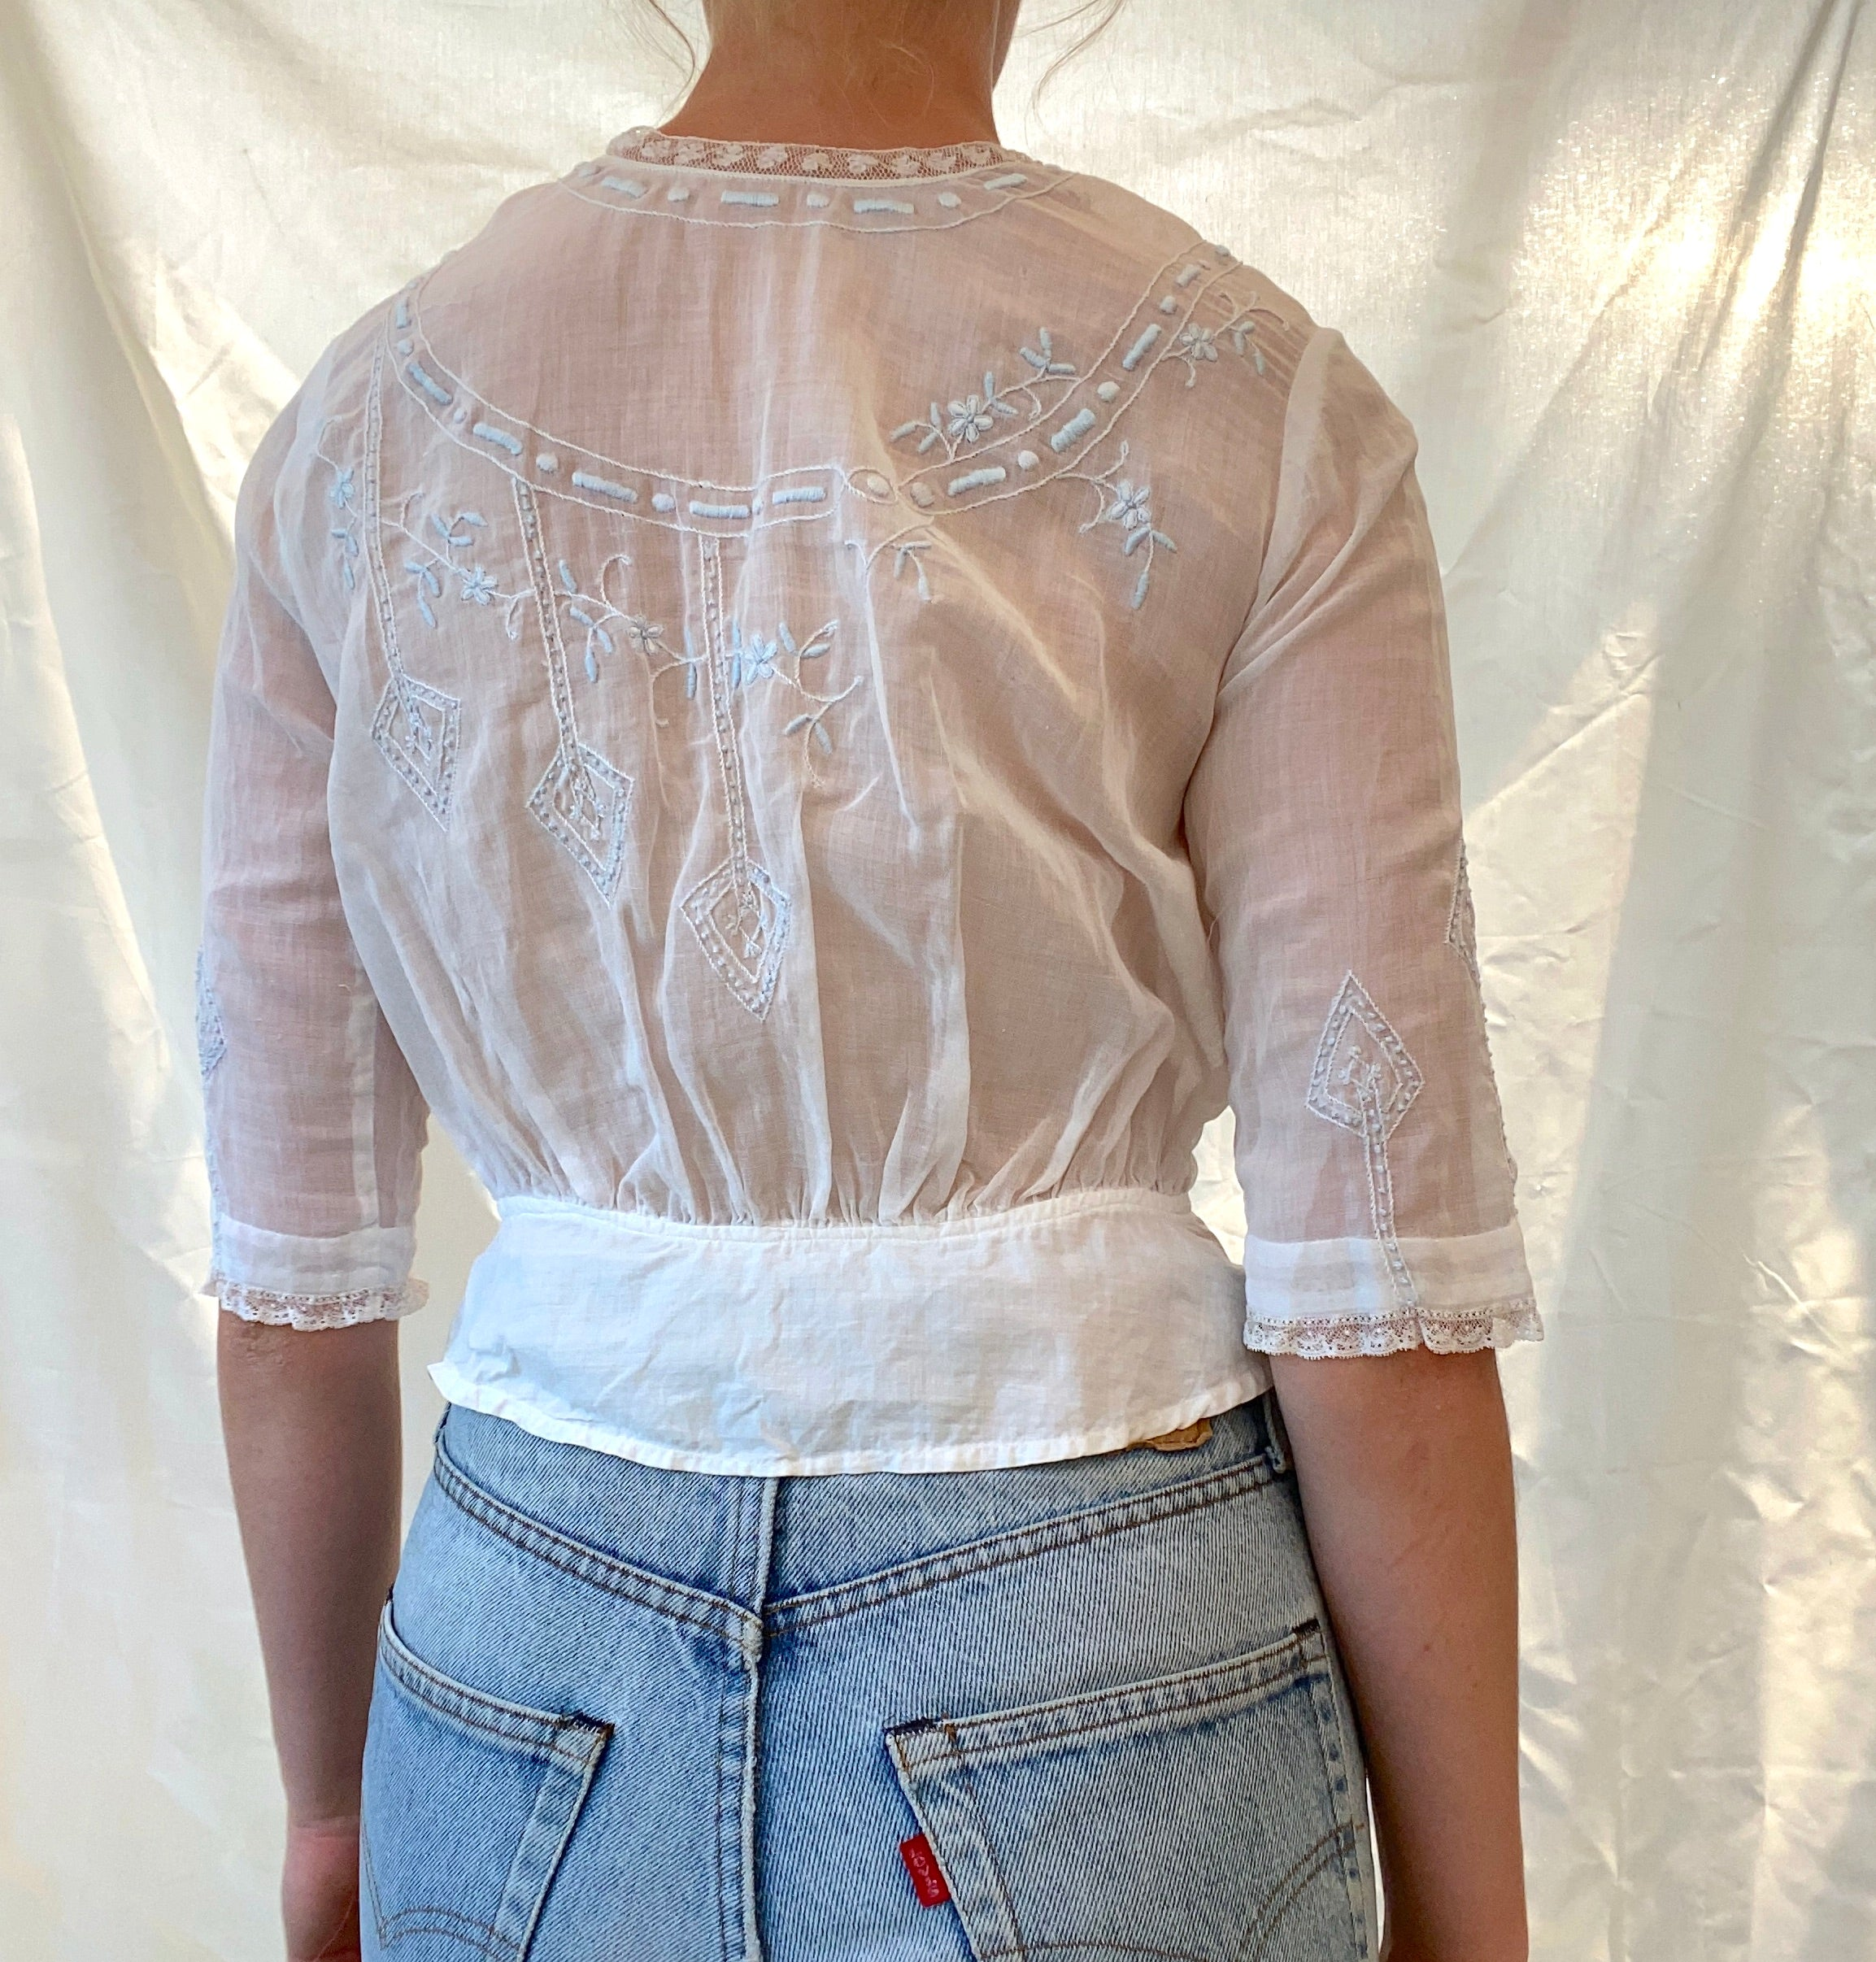 White Cotton Victorian Blouse with Light Blue Embroidery